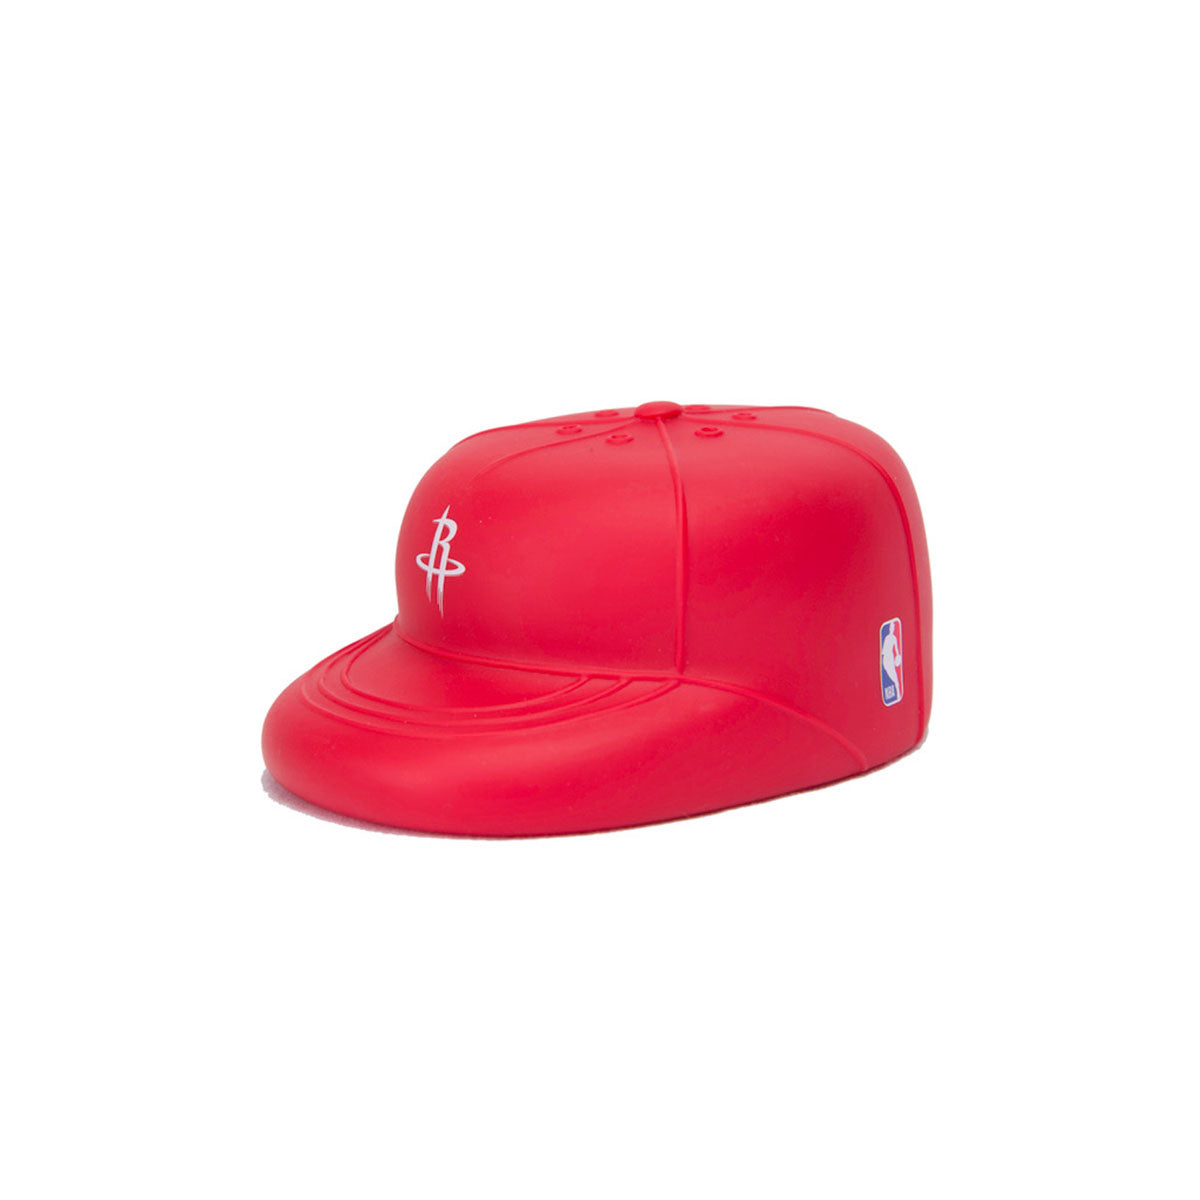 Nap Cap - NBA - Houston Rockets - PlayCap Chew Toy